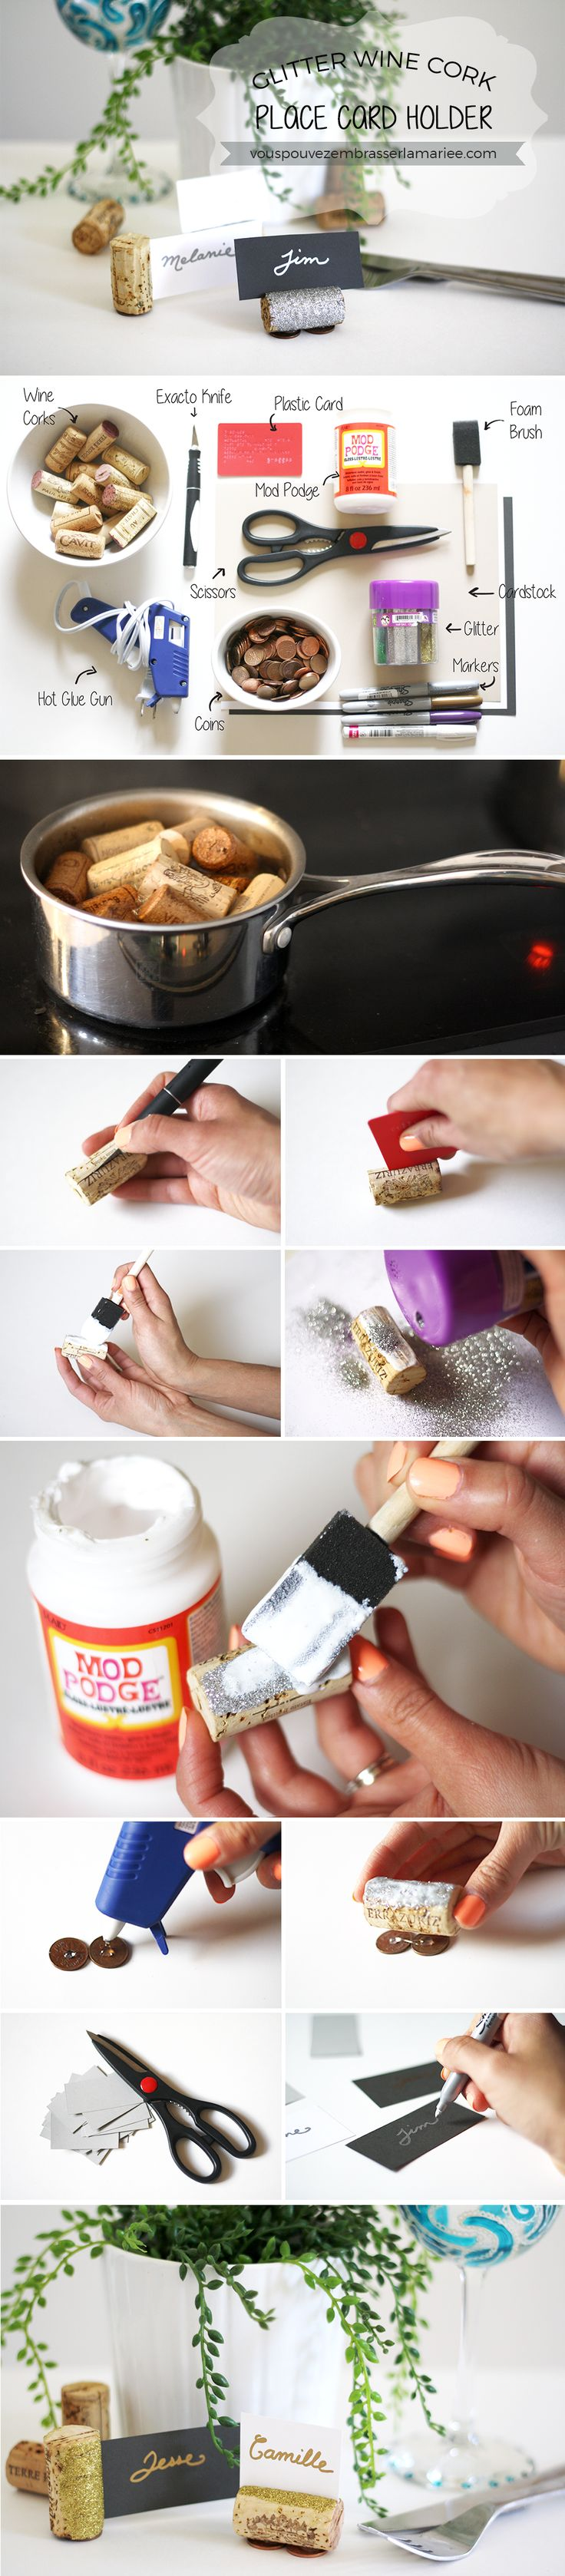 Amazing tutorial for Glitter Wine Cork Place Card Holder. Clear and very well explained. Great idea to use recycled wine corks for place card holders! And the glitter gives a lovely glamour touch!